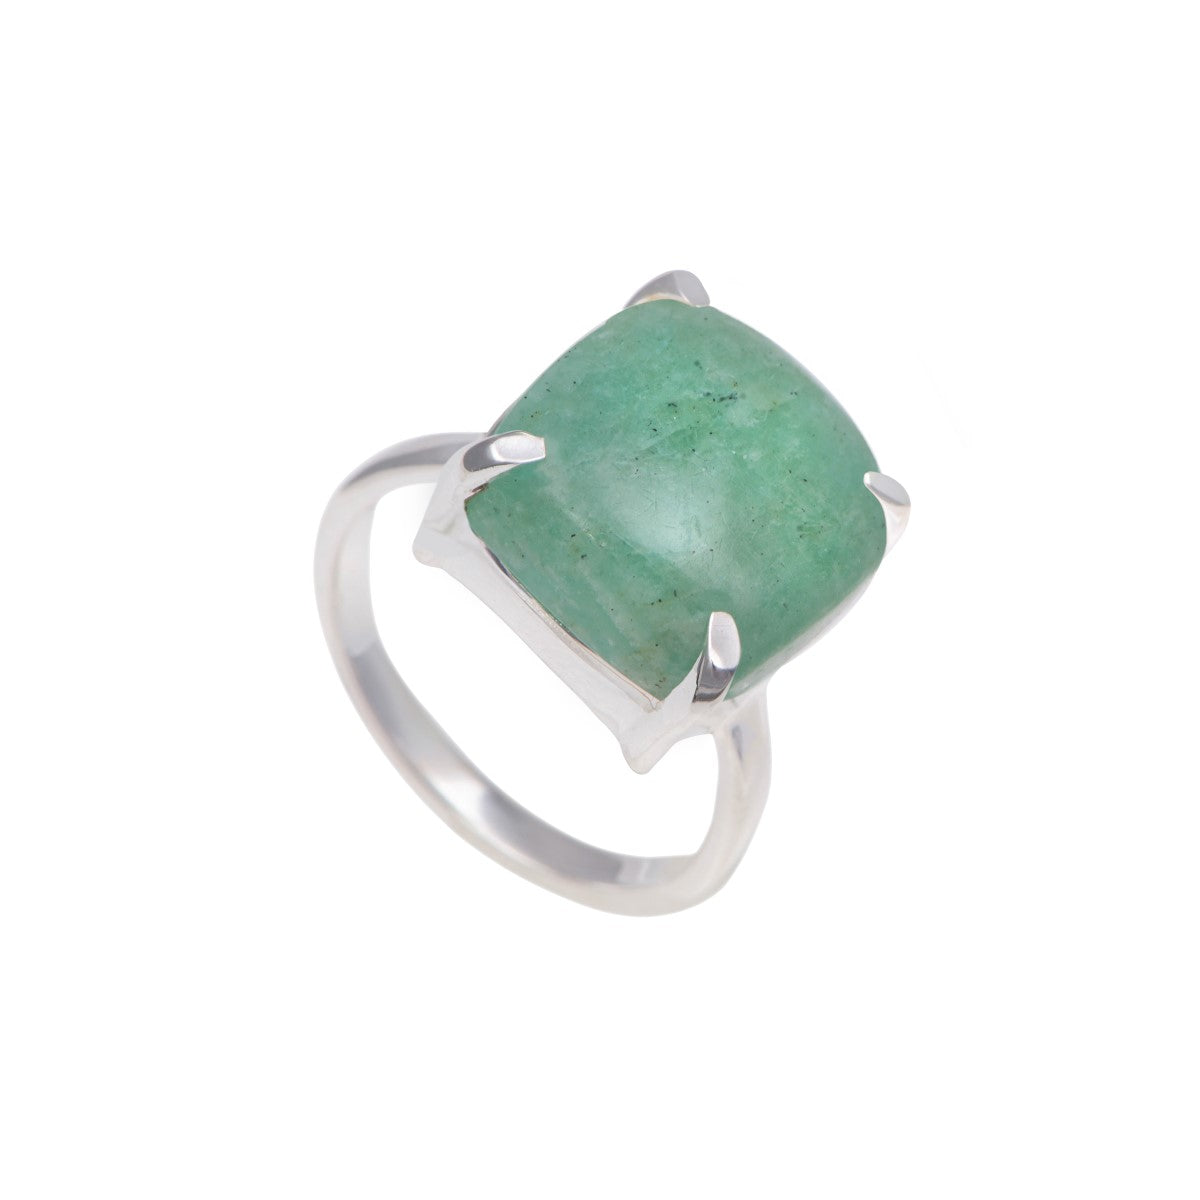 Square Cabochon Amazonite Ring in Sterling Silver